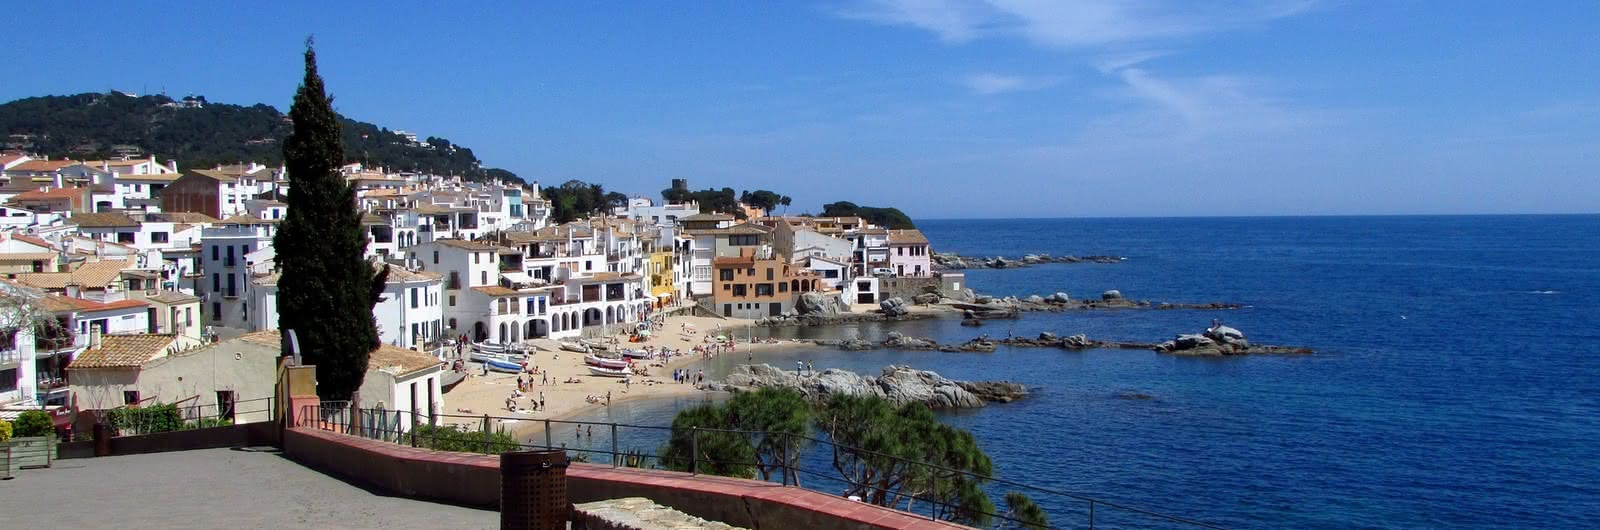 costa brava city header